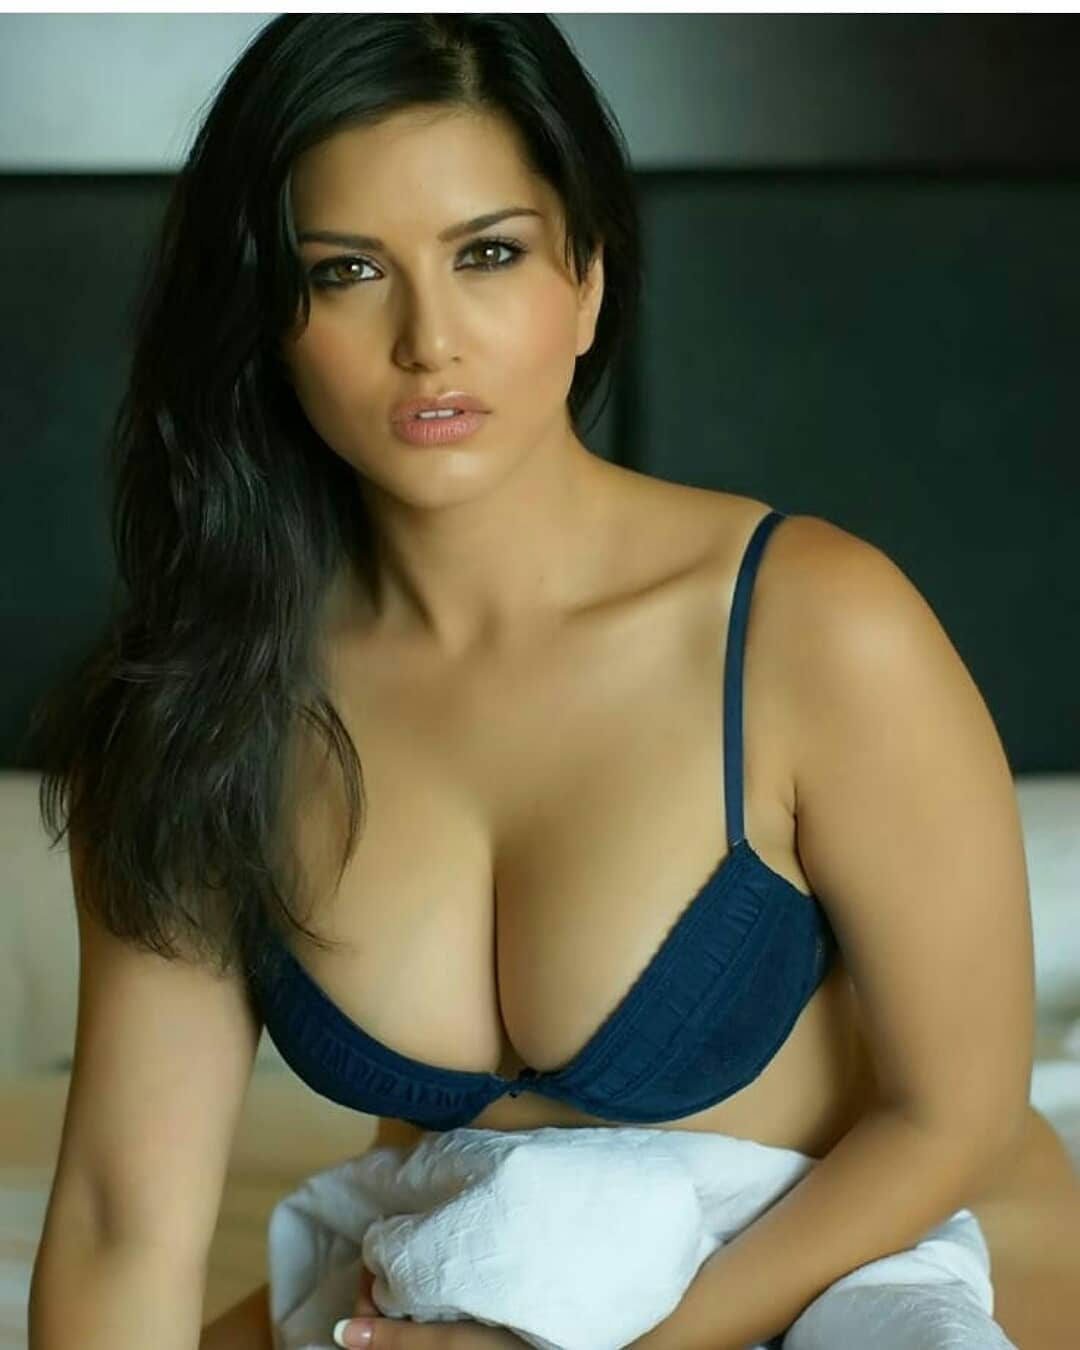 Sultry Sunny Leone Looks Very Hot In Lingerie - Cineindianet-9542